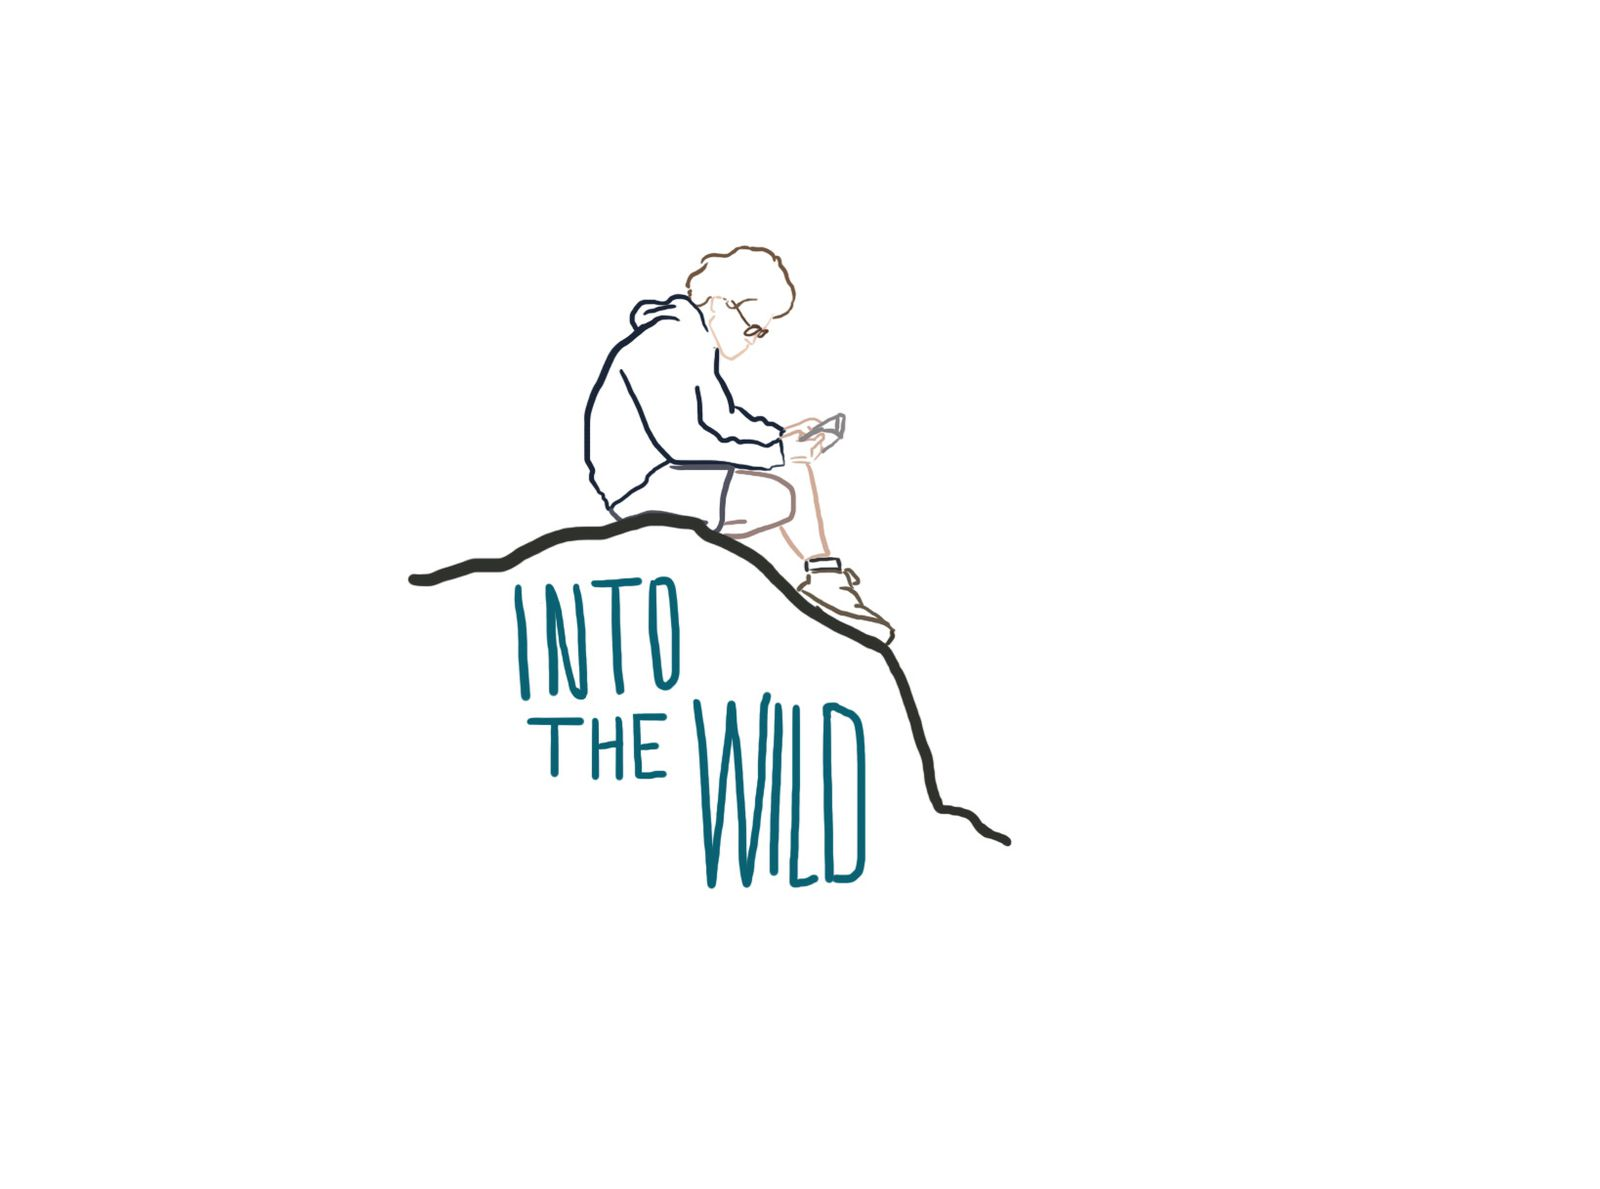 Wordsworth And Into The Wild, Mans Connection With Nature